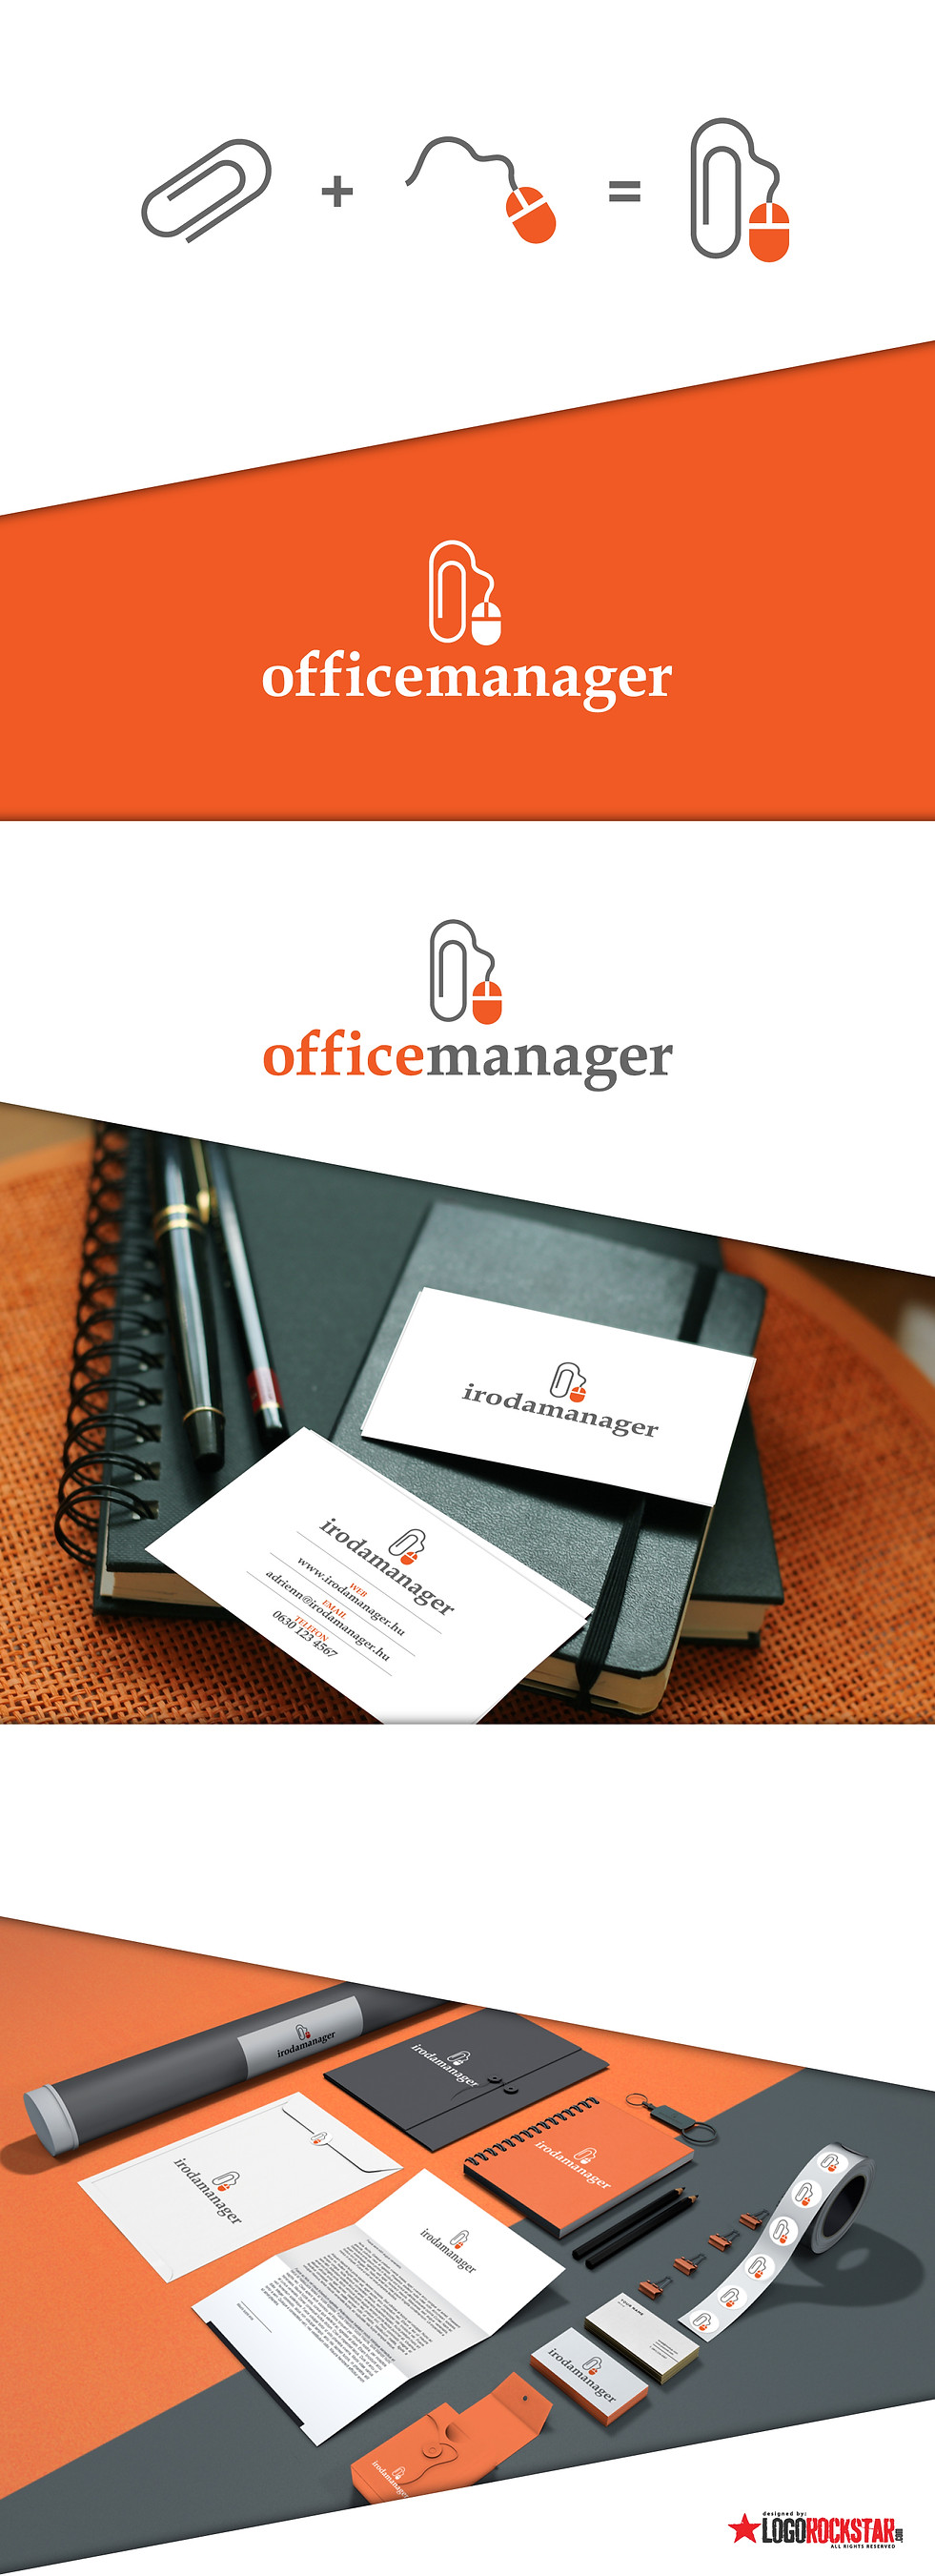 logorockstar office manager prezi